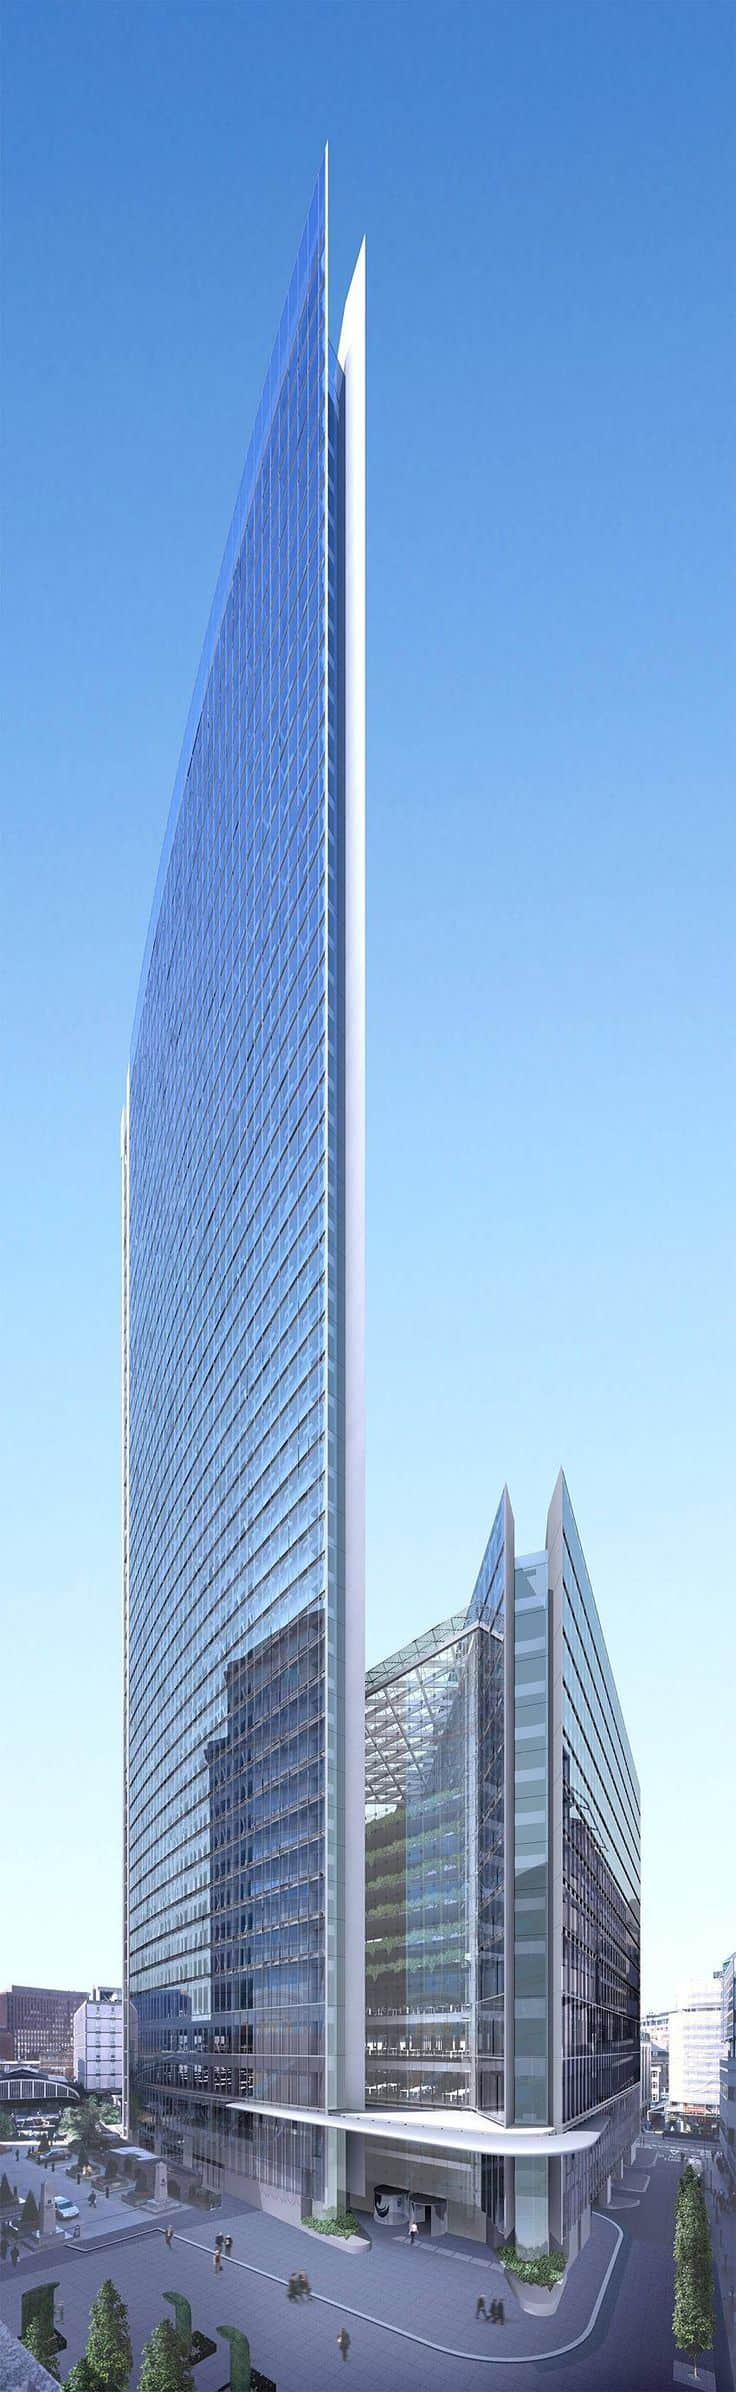 #40 THE MINERVA BUILDING IN LONDON IS AMODERN DISPLAY OFARCHITECTURAL STRUCTURE